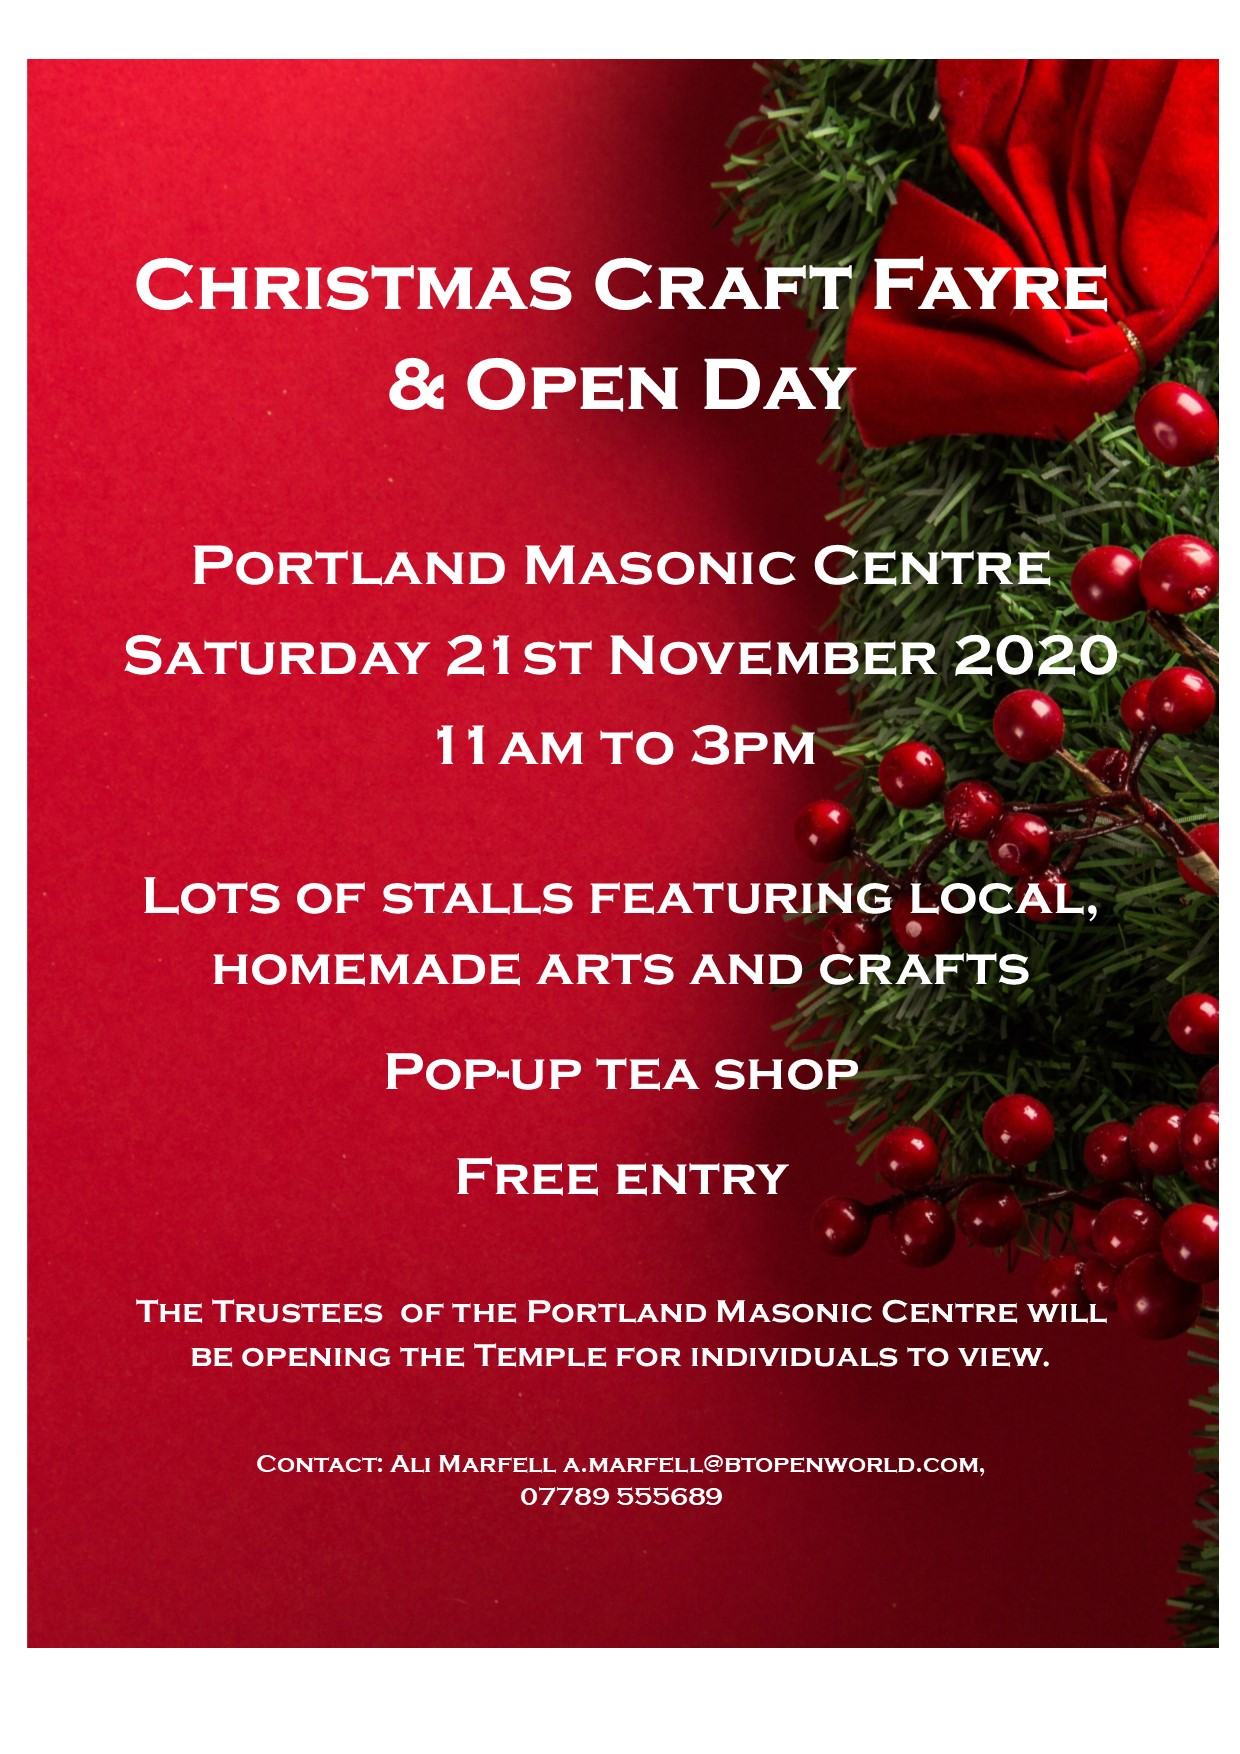 Christmas Craft Fayre & Open Day